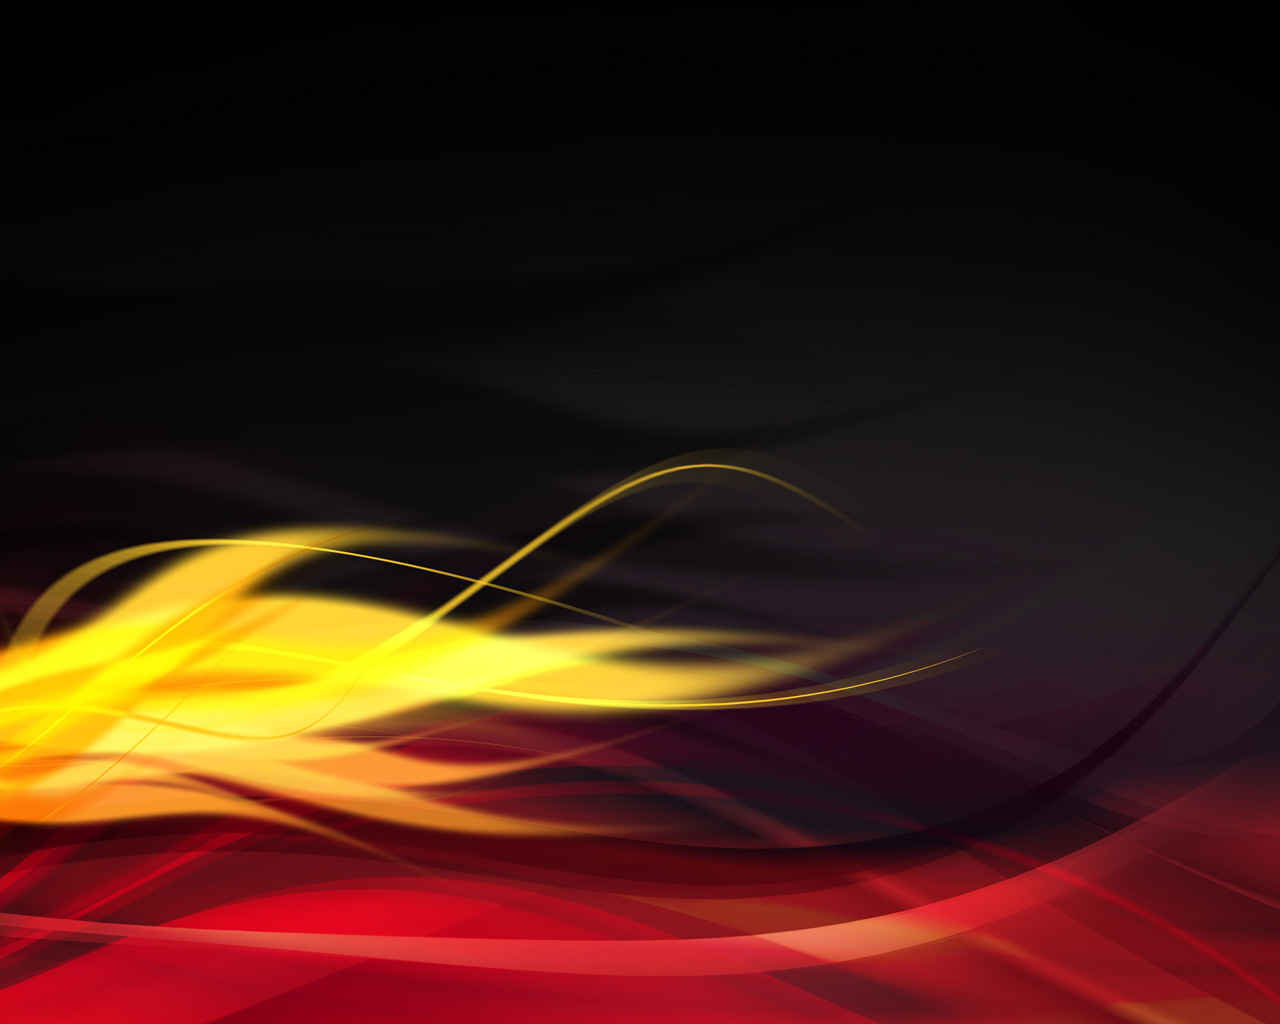 Free Hot Flames Background for Powerpoint Slides